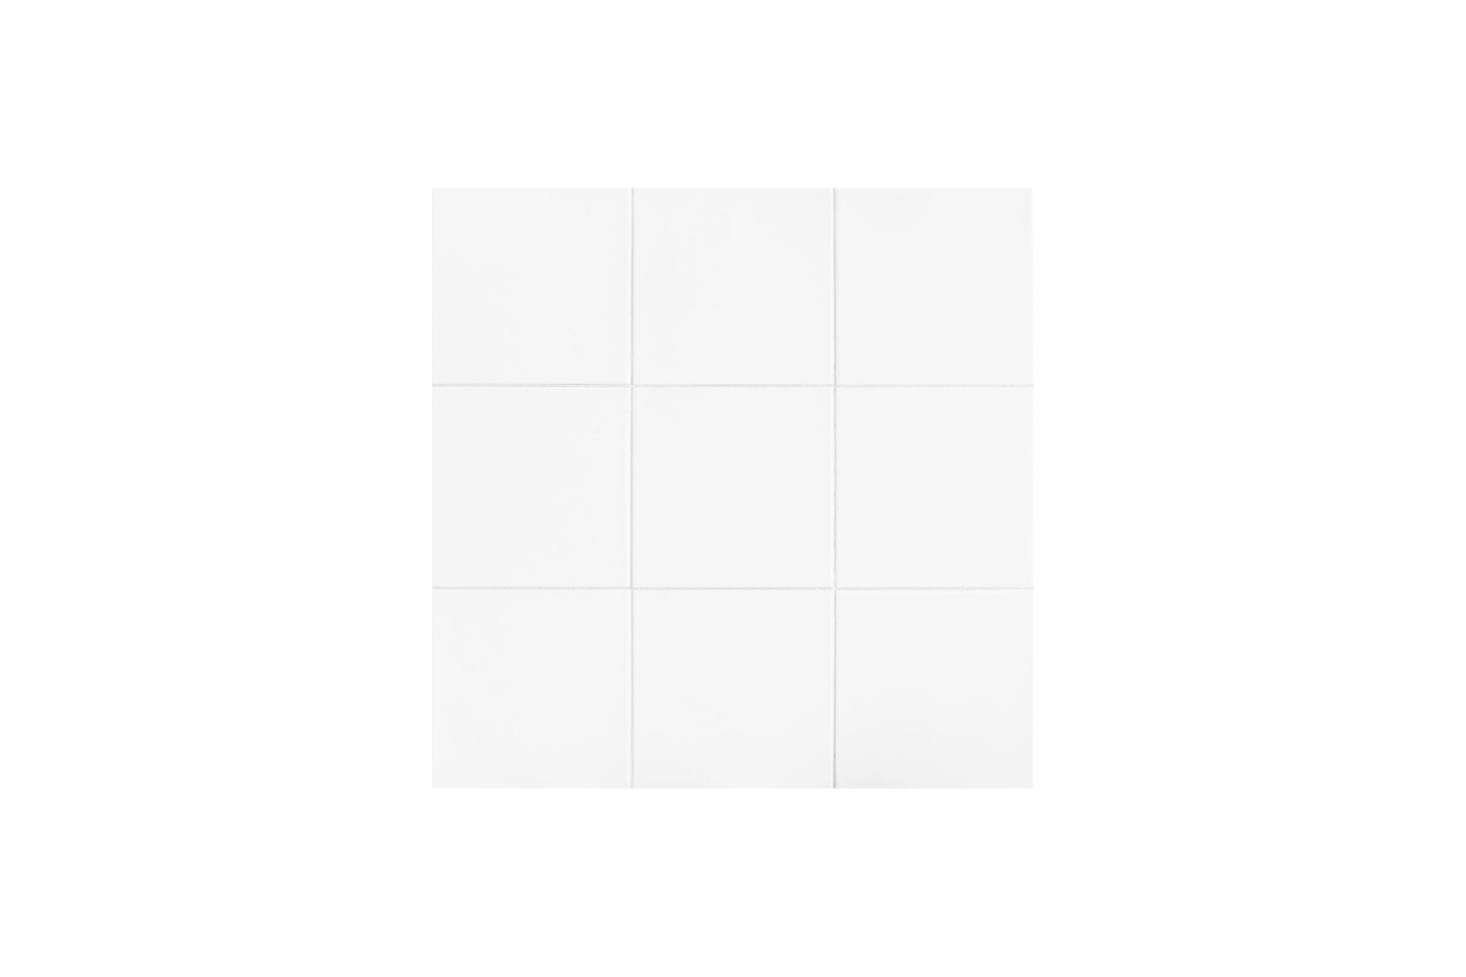 The Daltile Glacier White 12×12 Inch Ceramic Floor and Wall Tile is $10.89 for a case of tile that covers 11 square feet at The Home Depot. The tile is set with dark grout; for more see Remodeling 101: How to Choose the Right Tile Grout.